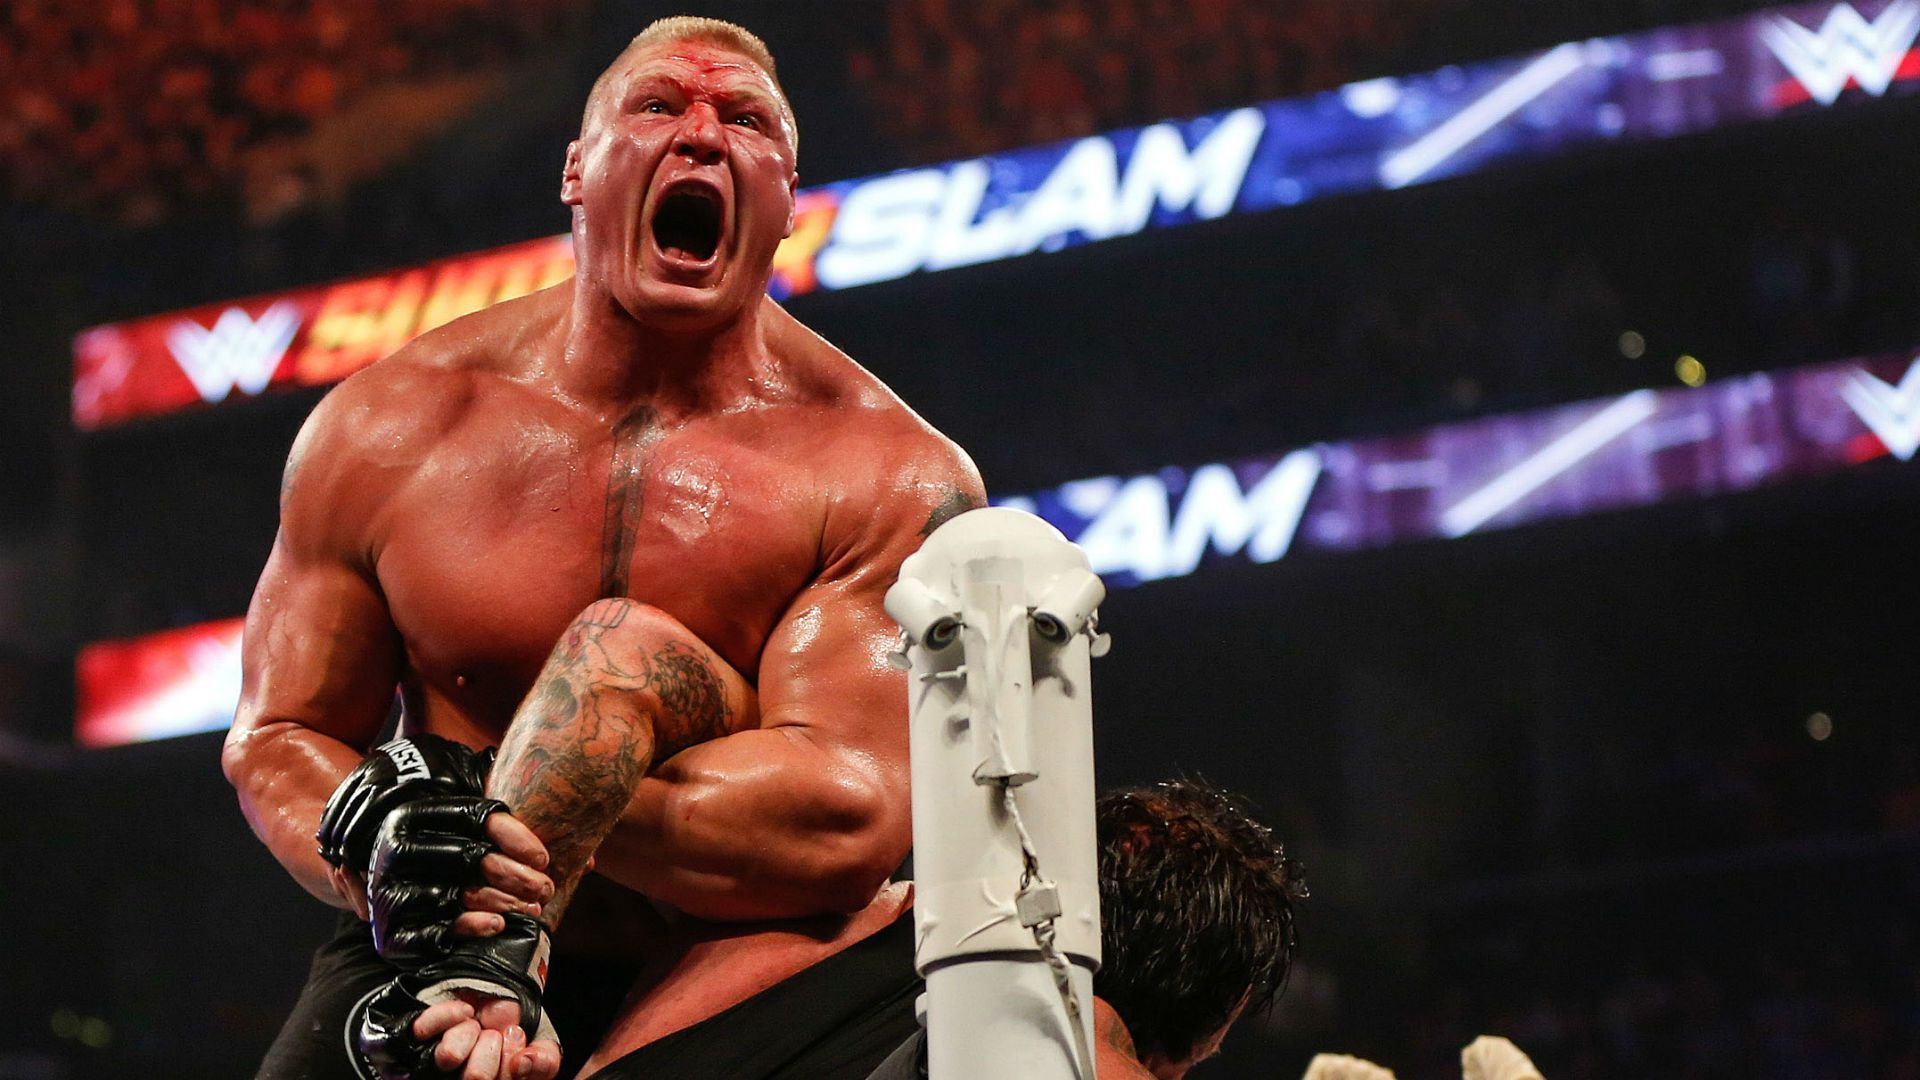 Brock Lesnar Wallpaper Download Posted By Zoey Mercado